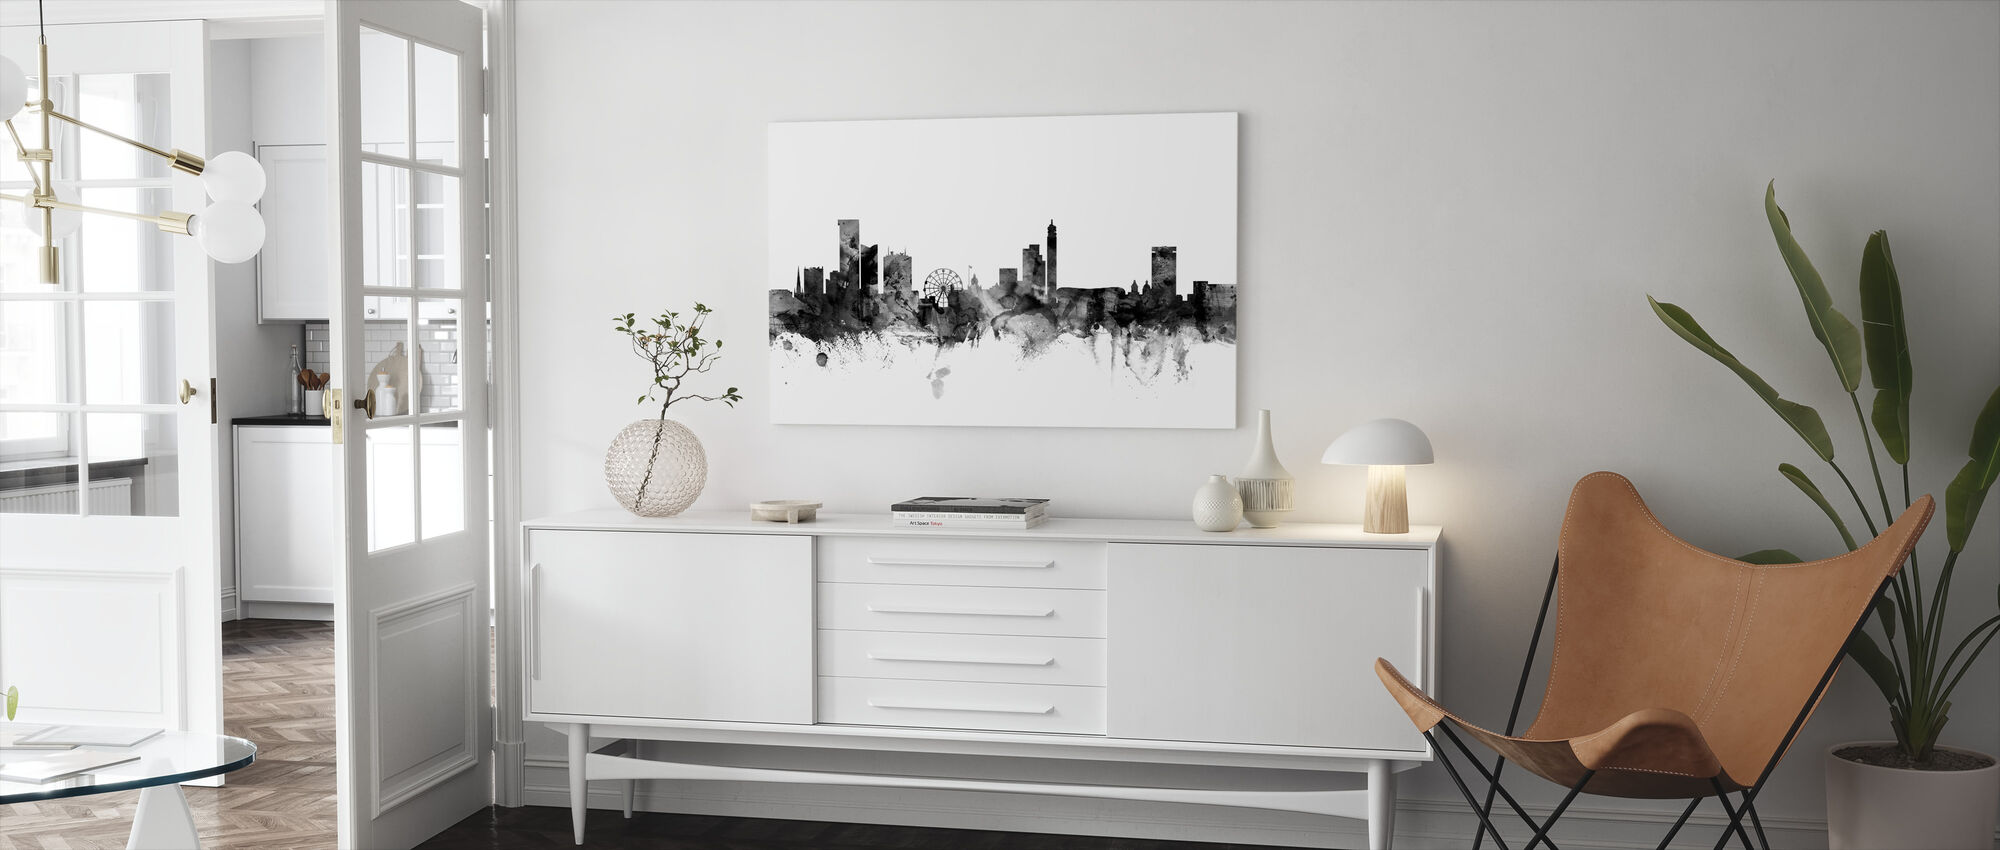 Birmingham UK Skyline Black - Canvas print - Living Room